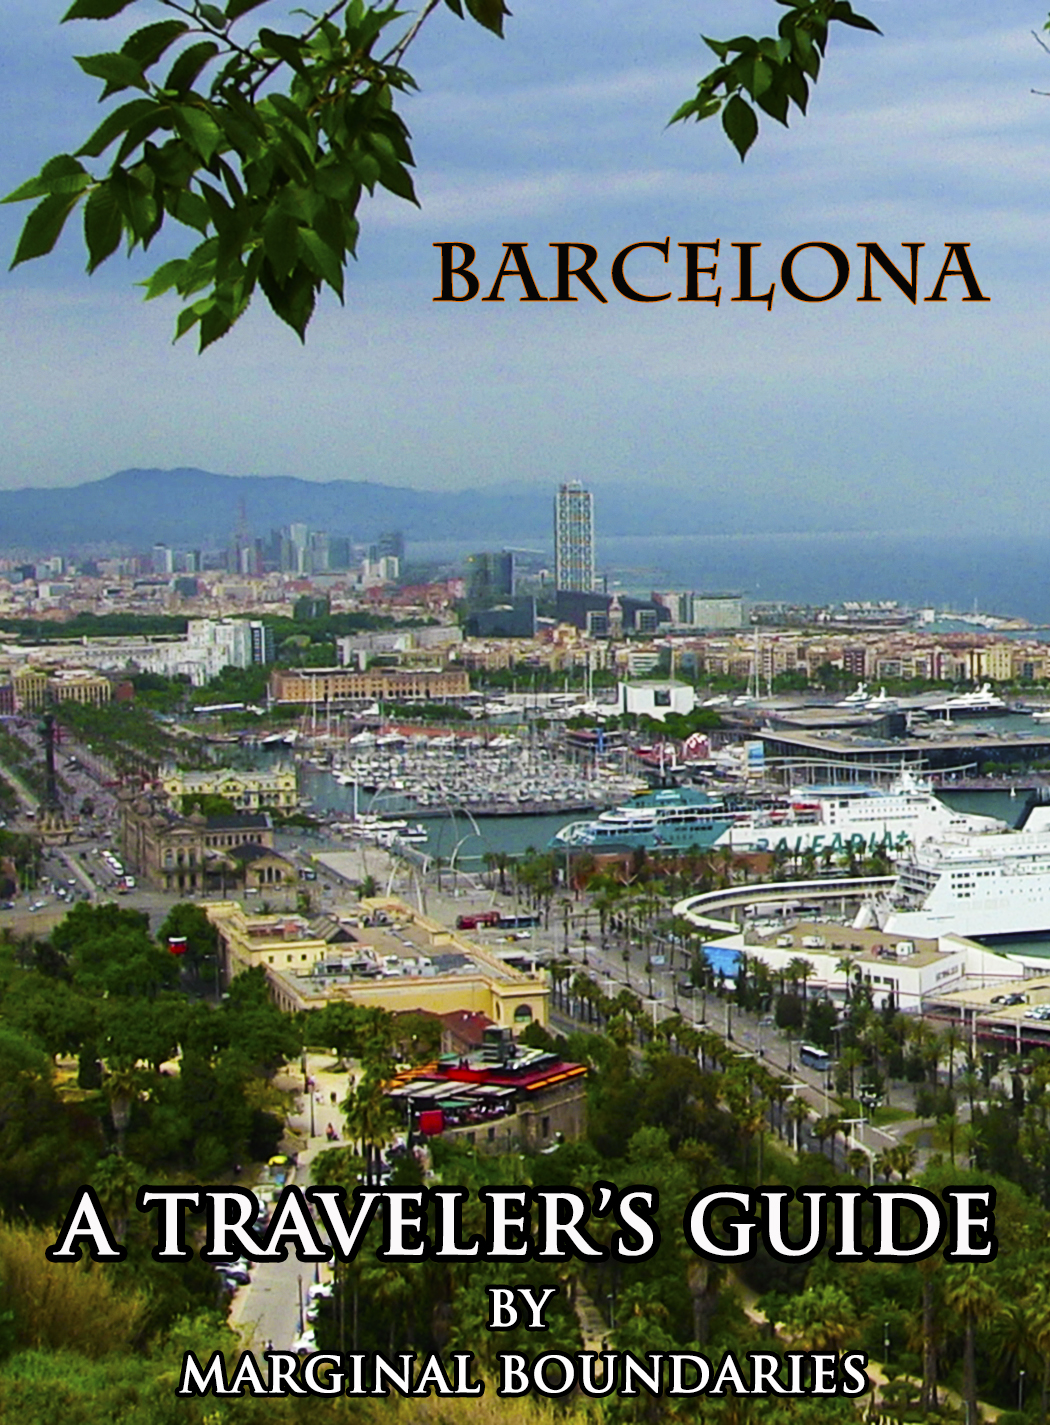 A Traveler's Guide to Barcelona